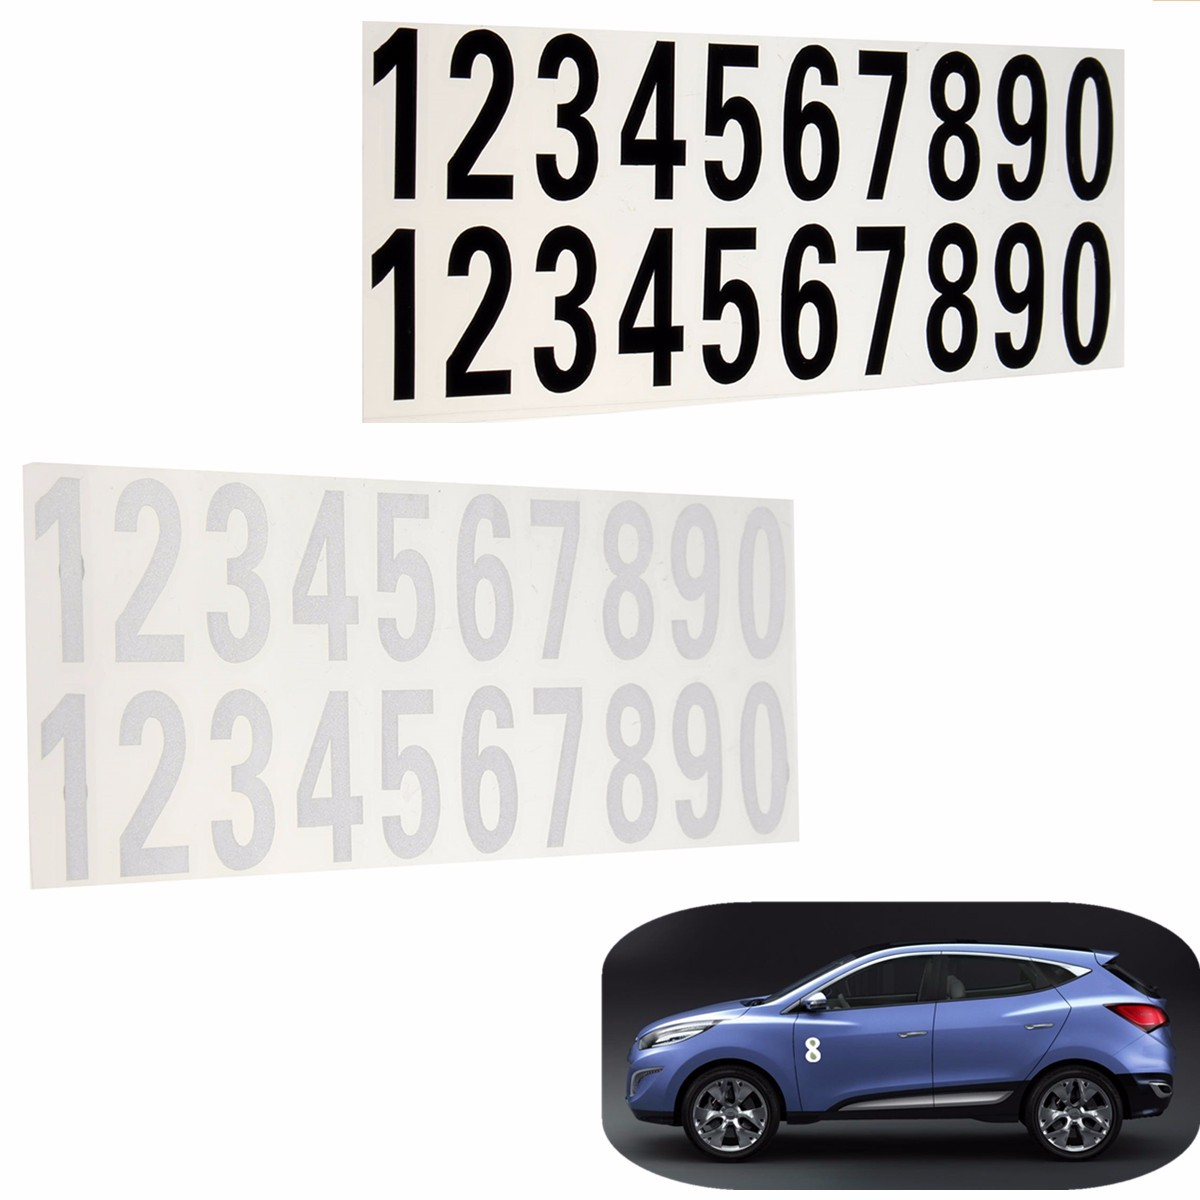 House Door Street Address Mailbox Number Digits Numeral Car Room Gate Vinyl Decal Reflective Stickers White Black